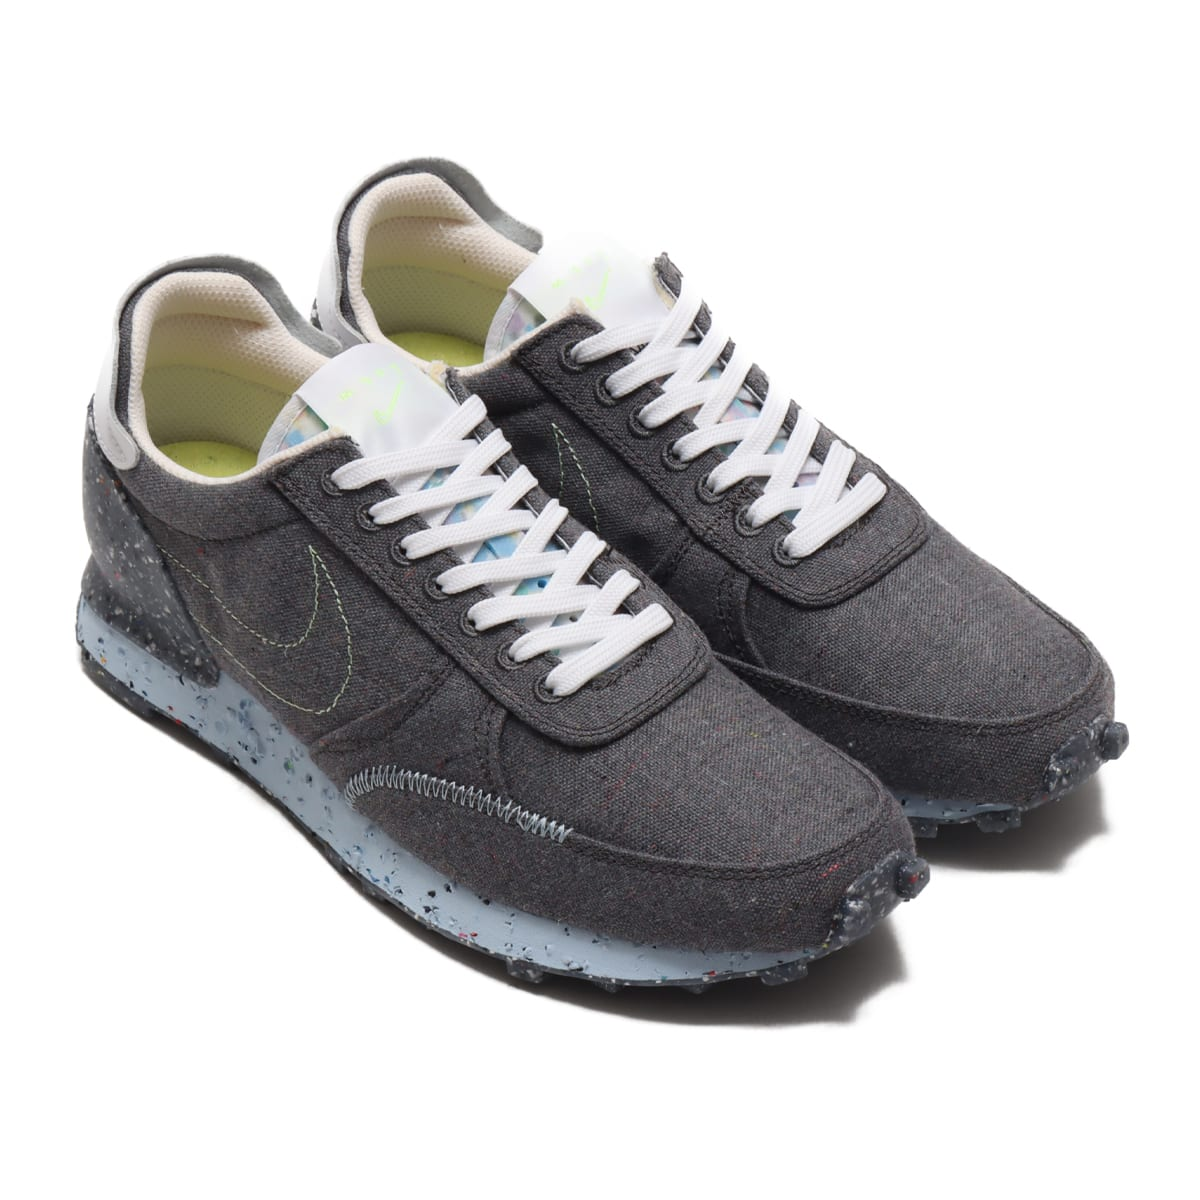 NIKE DBREAK-TYPE IRON GREY/BARELY VOLT-WHITE 20FA-I_photo_large